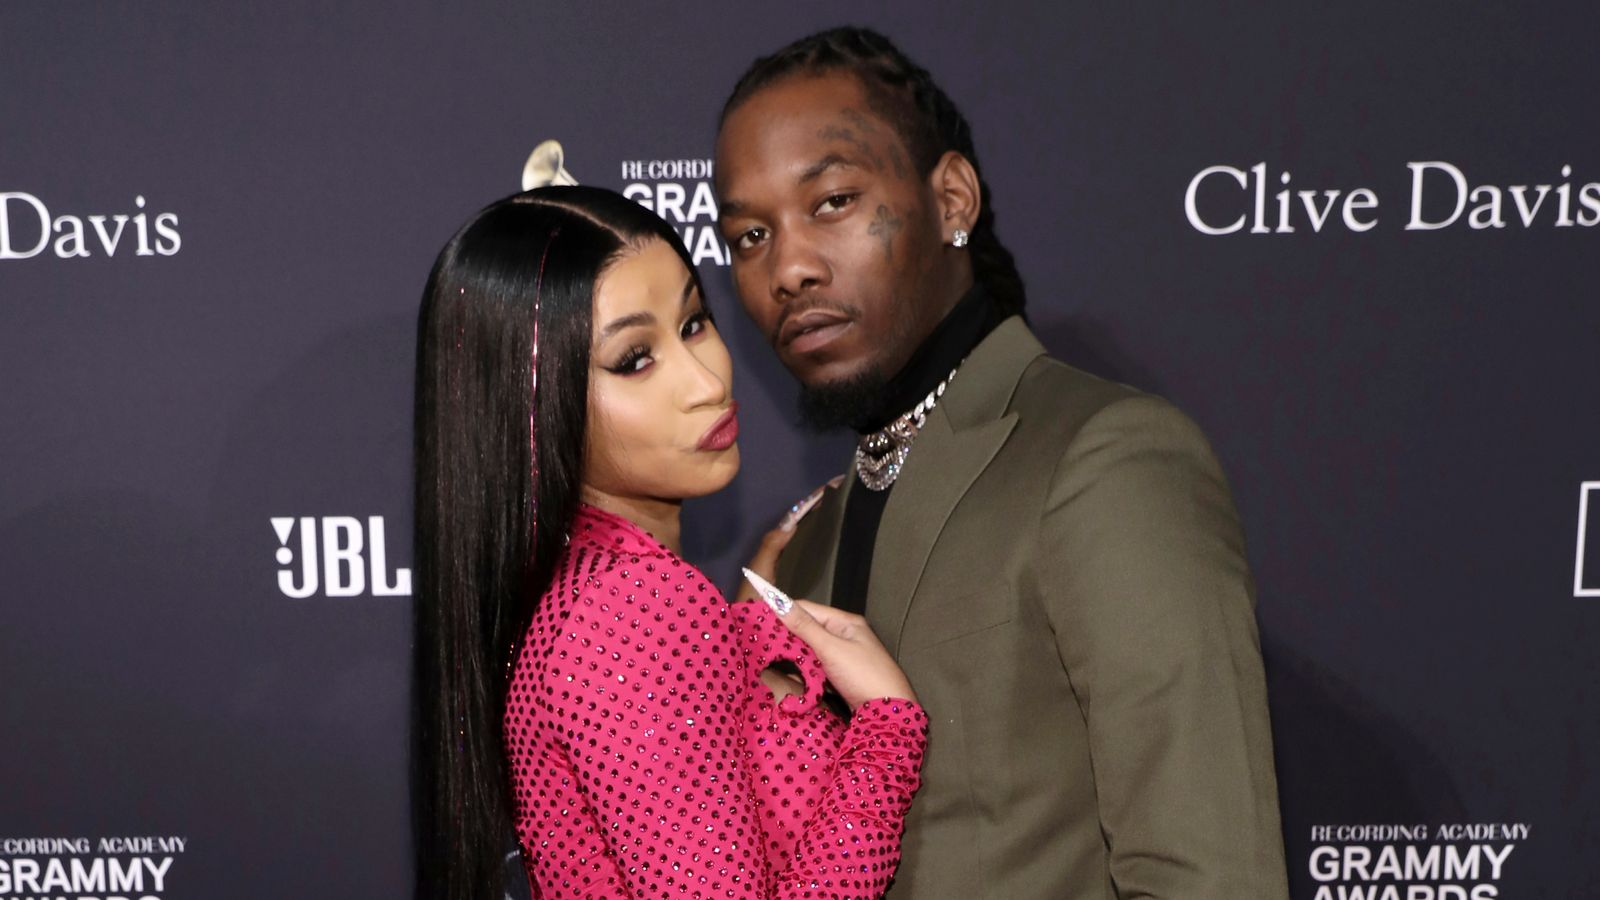 'We are so overjoyed': Cardi B gives birth to second child with Migos star Offset